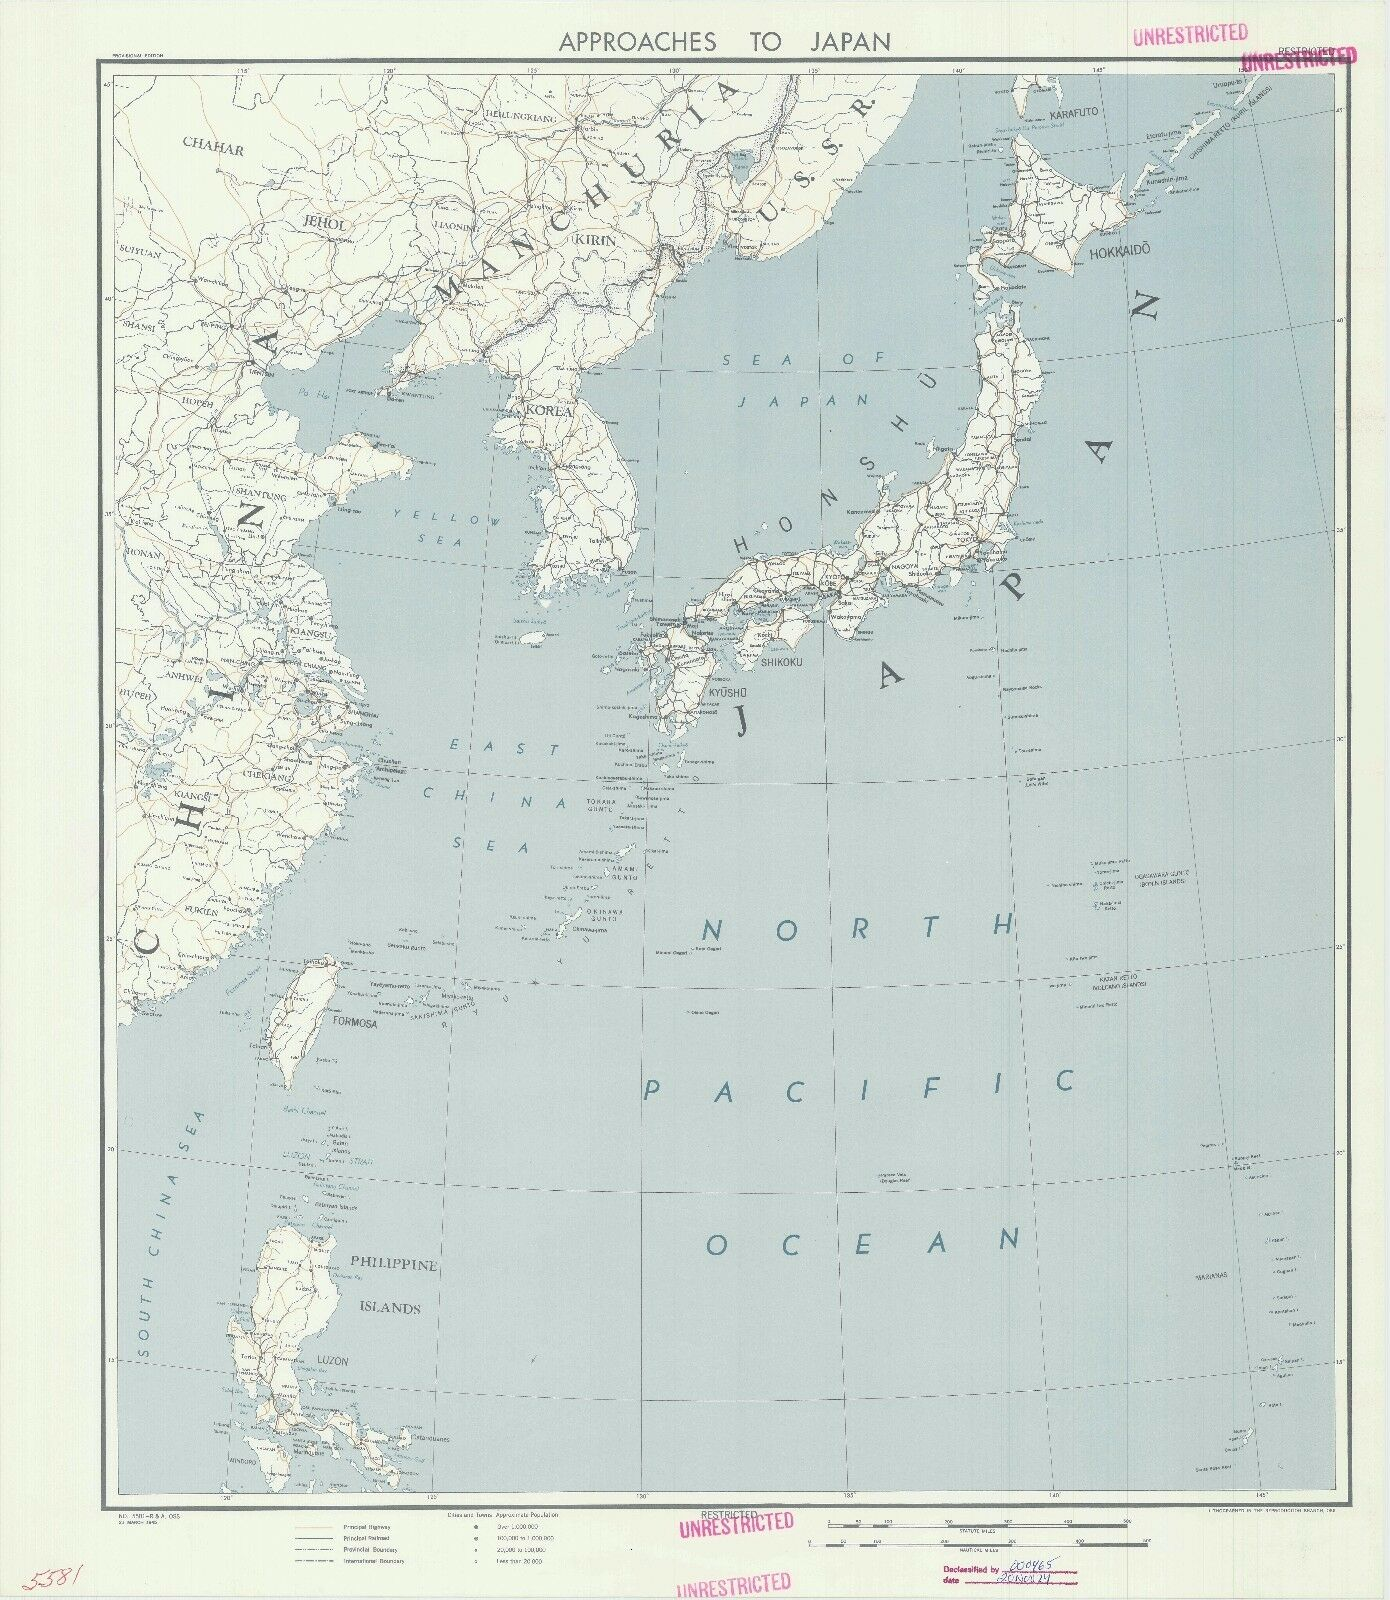 Approaches to japan 1945 cia declassified map world war 2 wwii approaches to japan 1945 cia declassified map world war 2 wwii 1 of 1free shipping gumiabroncs Gallery